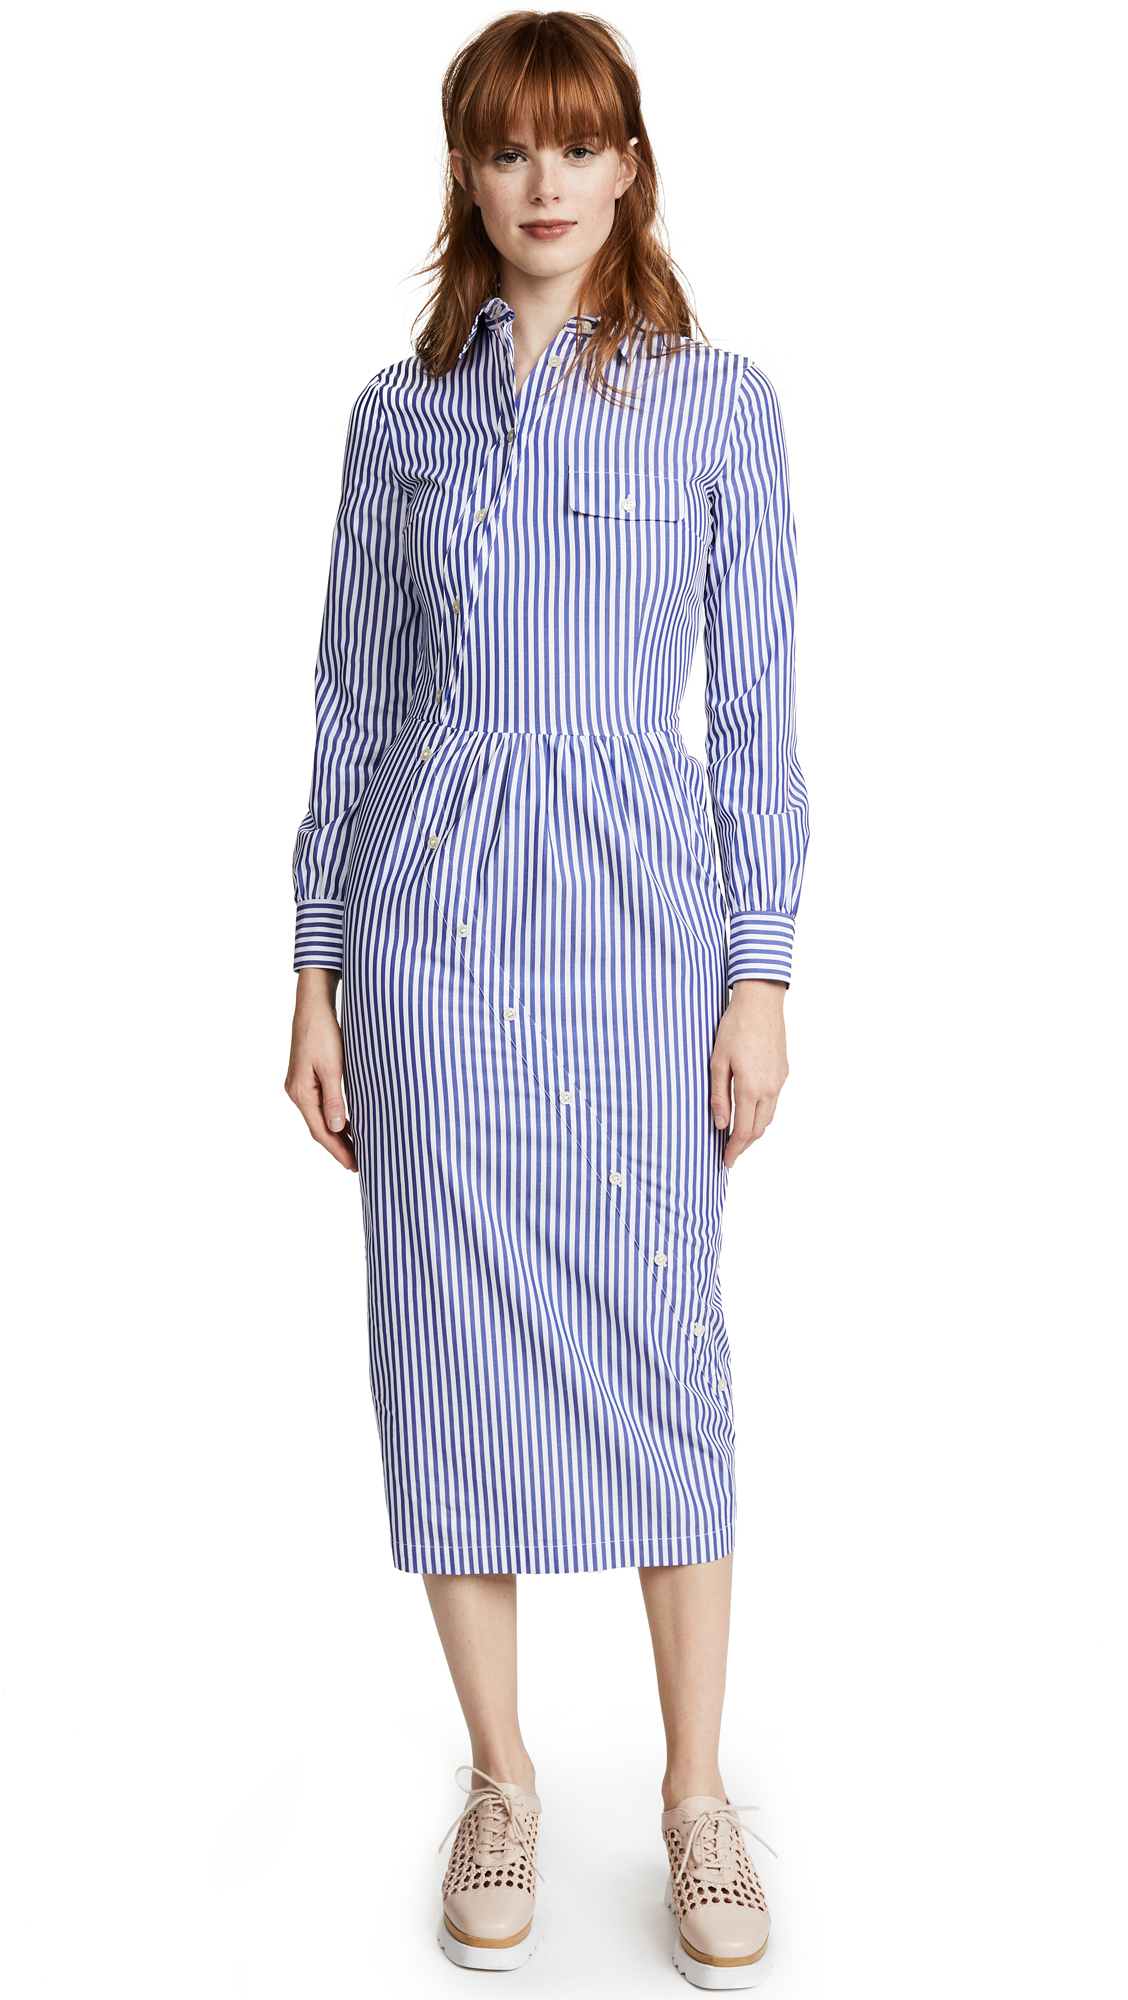 Stella Jean Long Sleeve Shirt Dress - Dark Blue Stripe